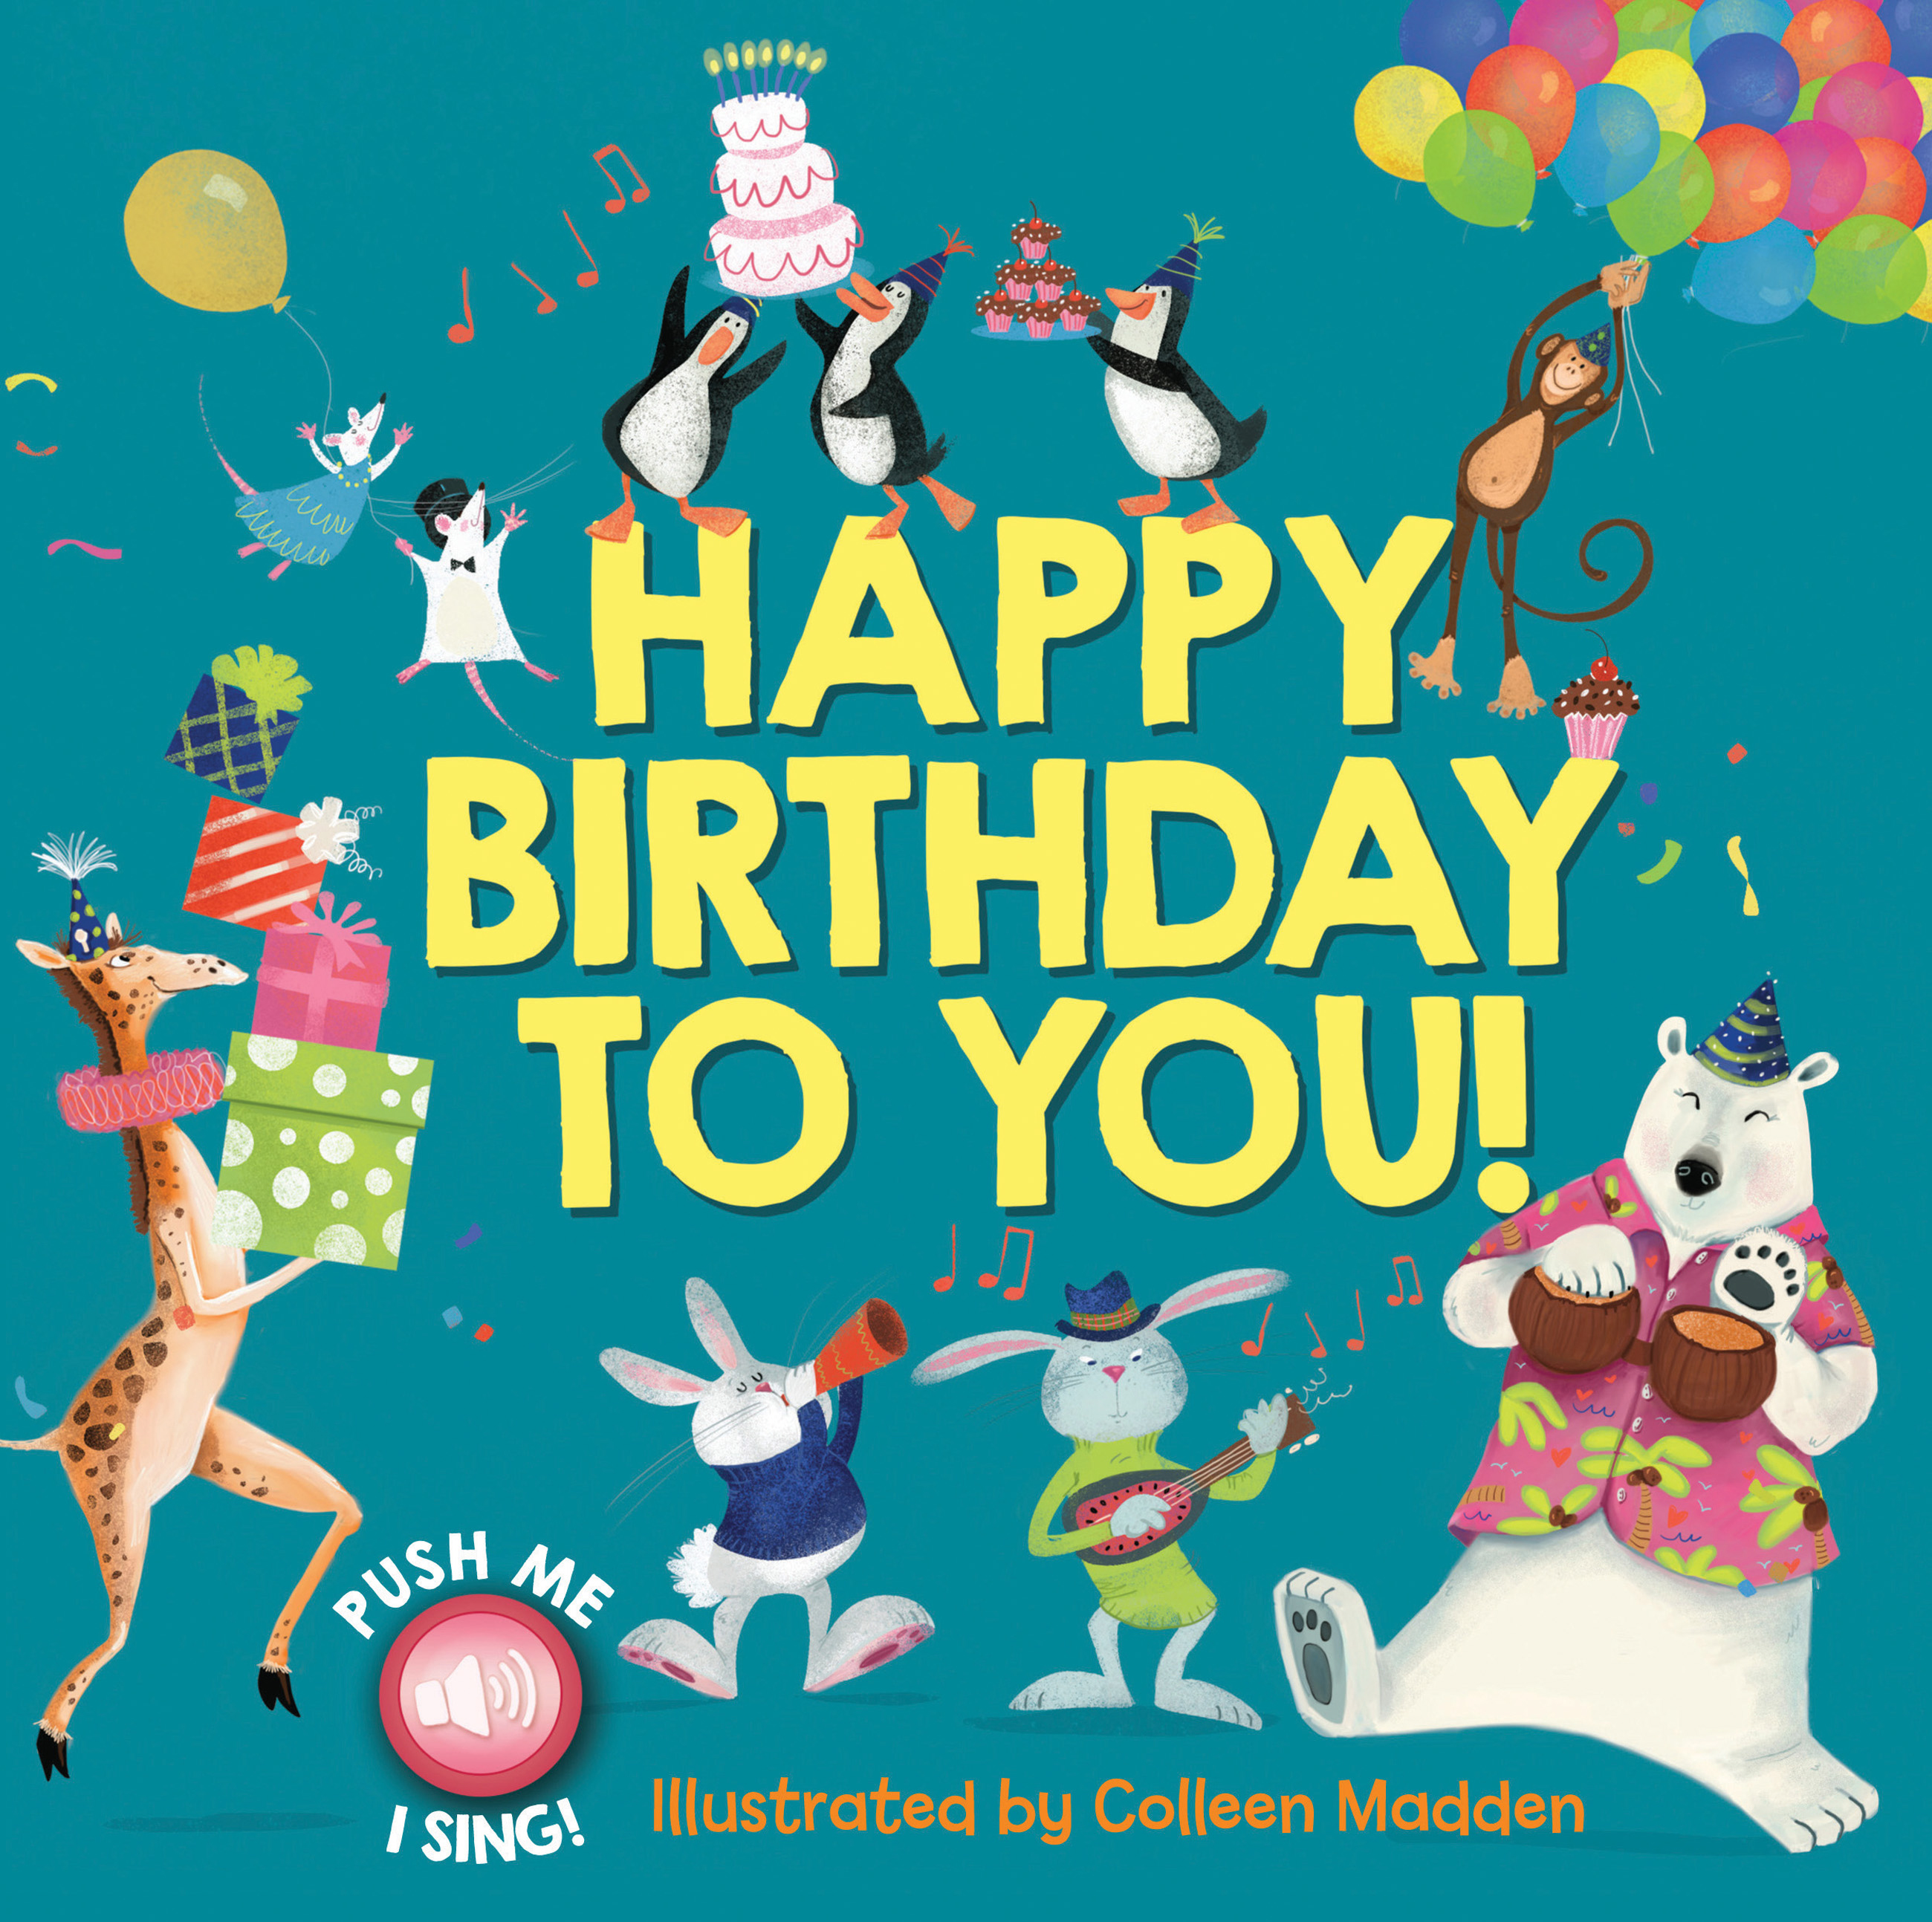 Happy Birthday to You! - illustrated by Colleen Madden